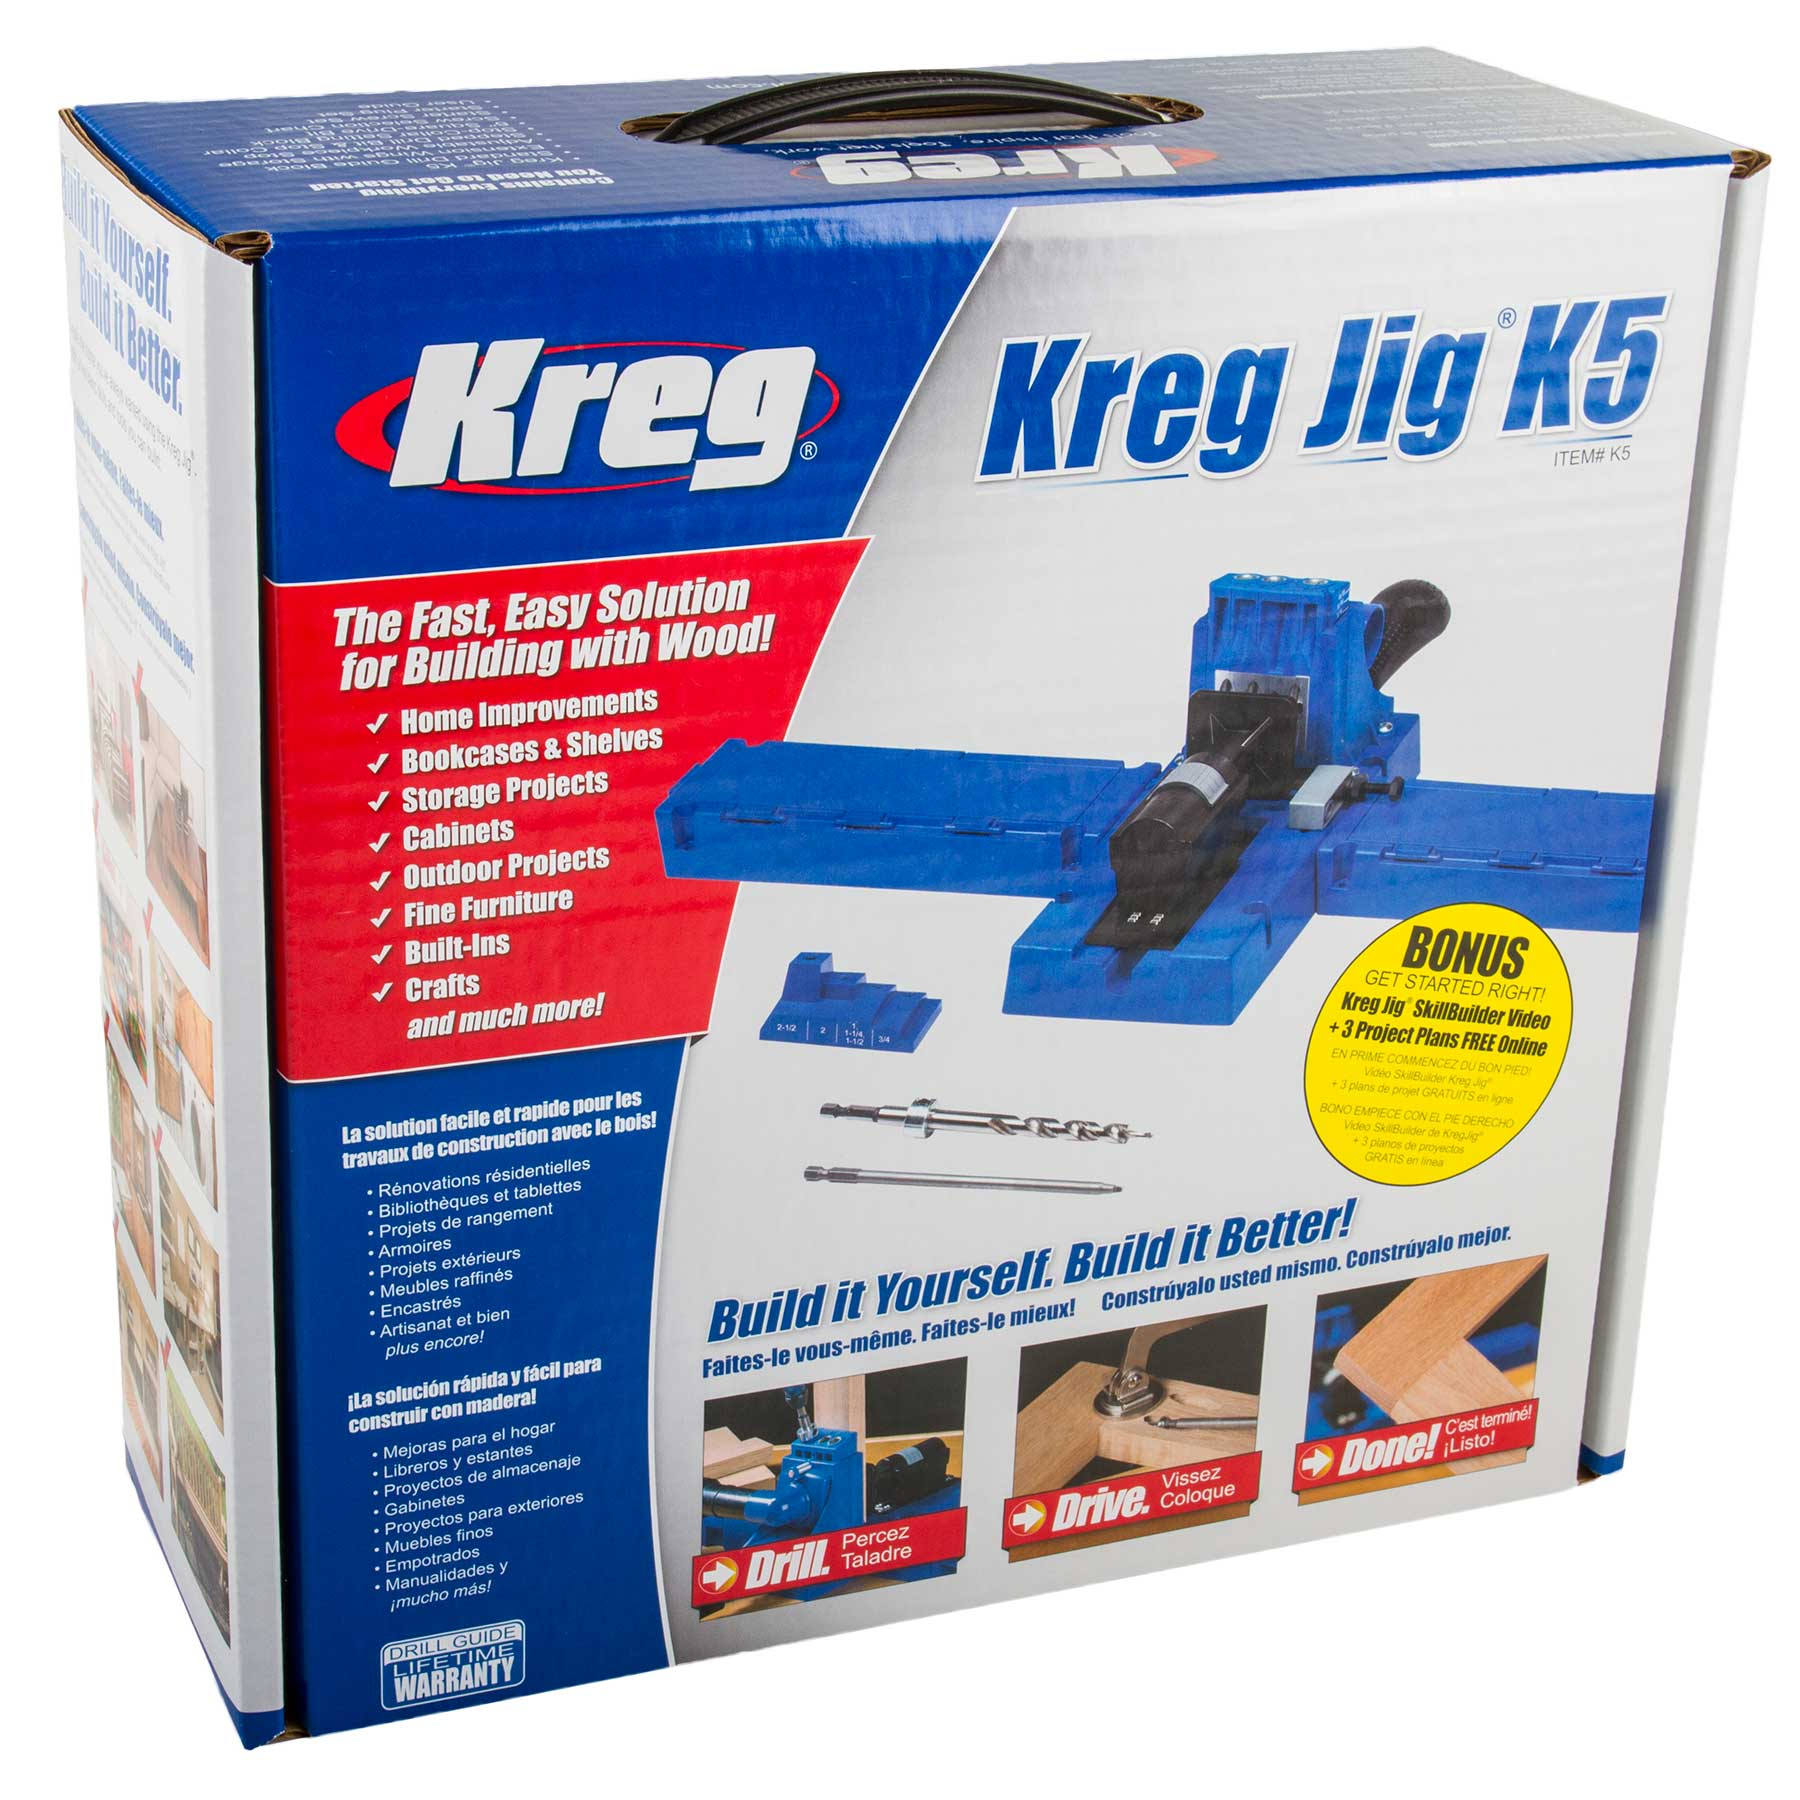 Kreg K5 Pocket Hole Jig Kit with 675 Screws | Kreg K5